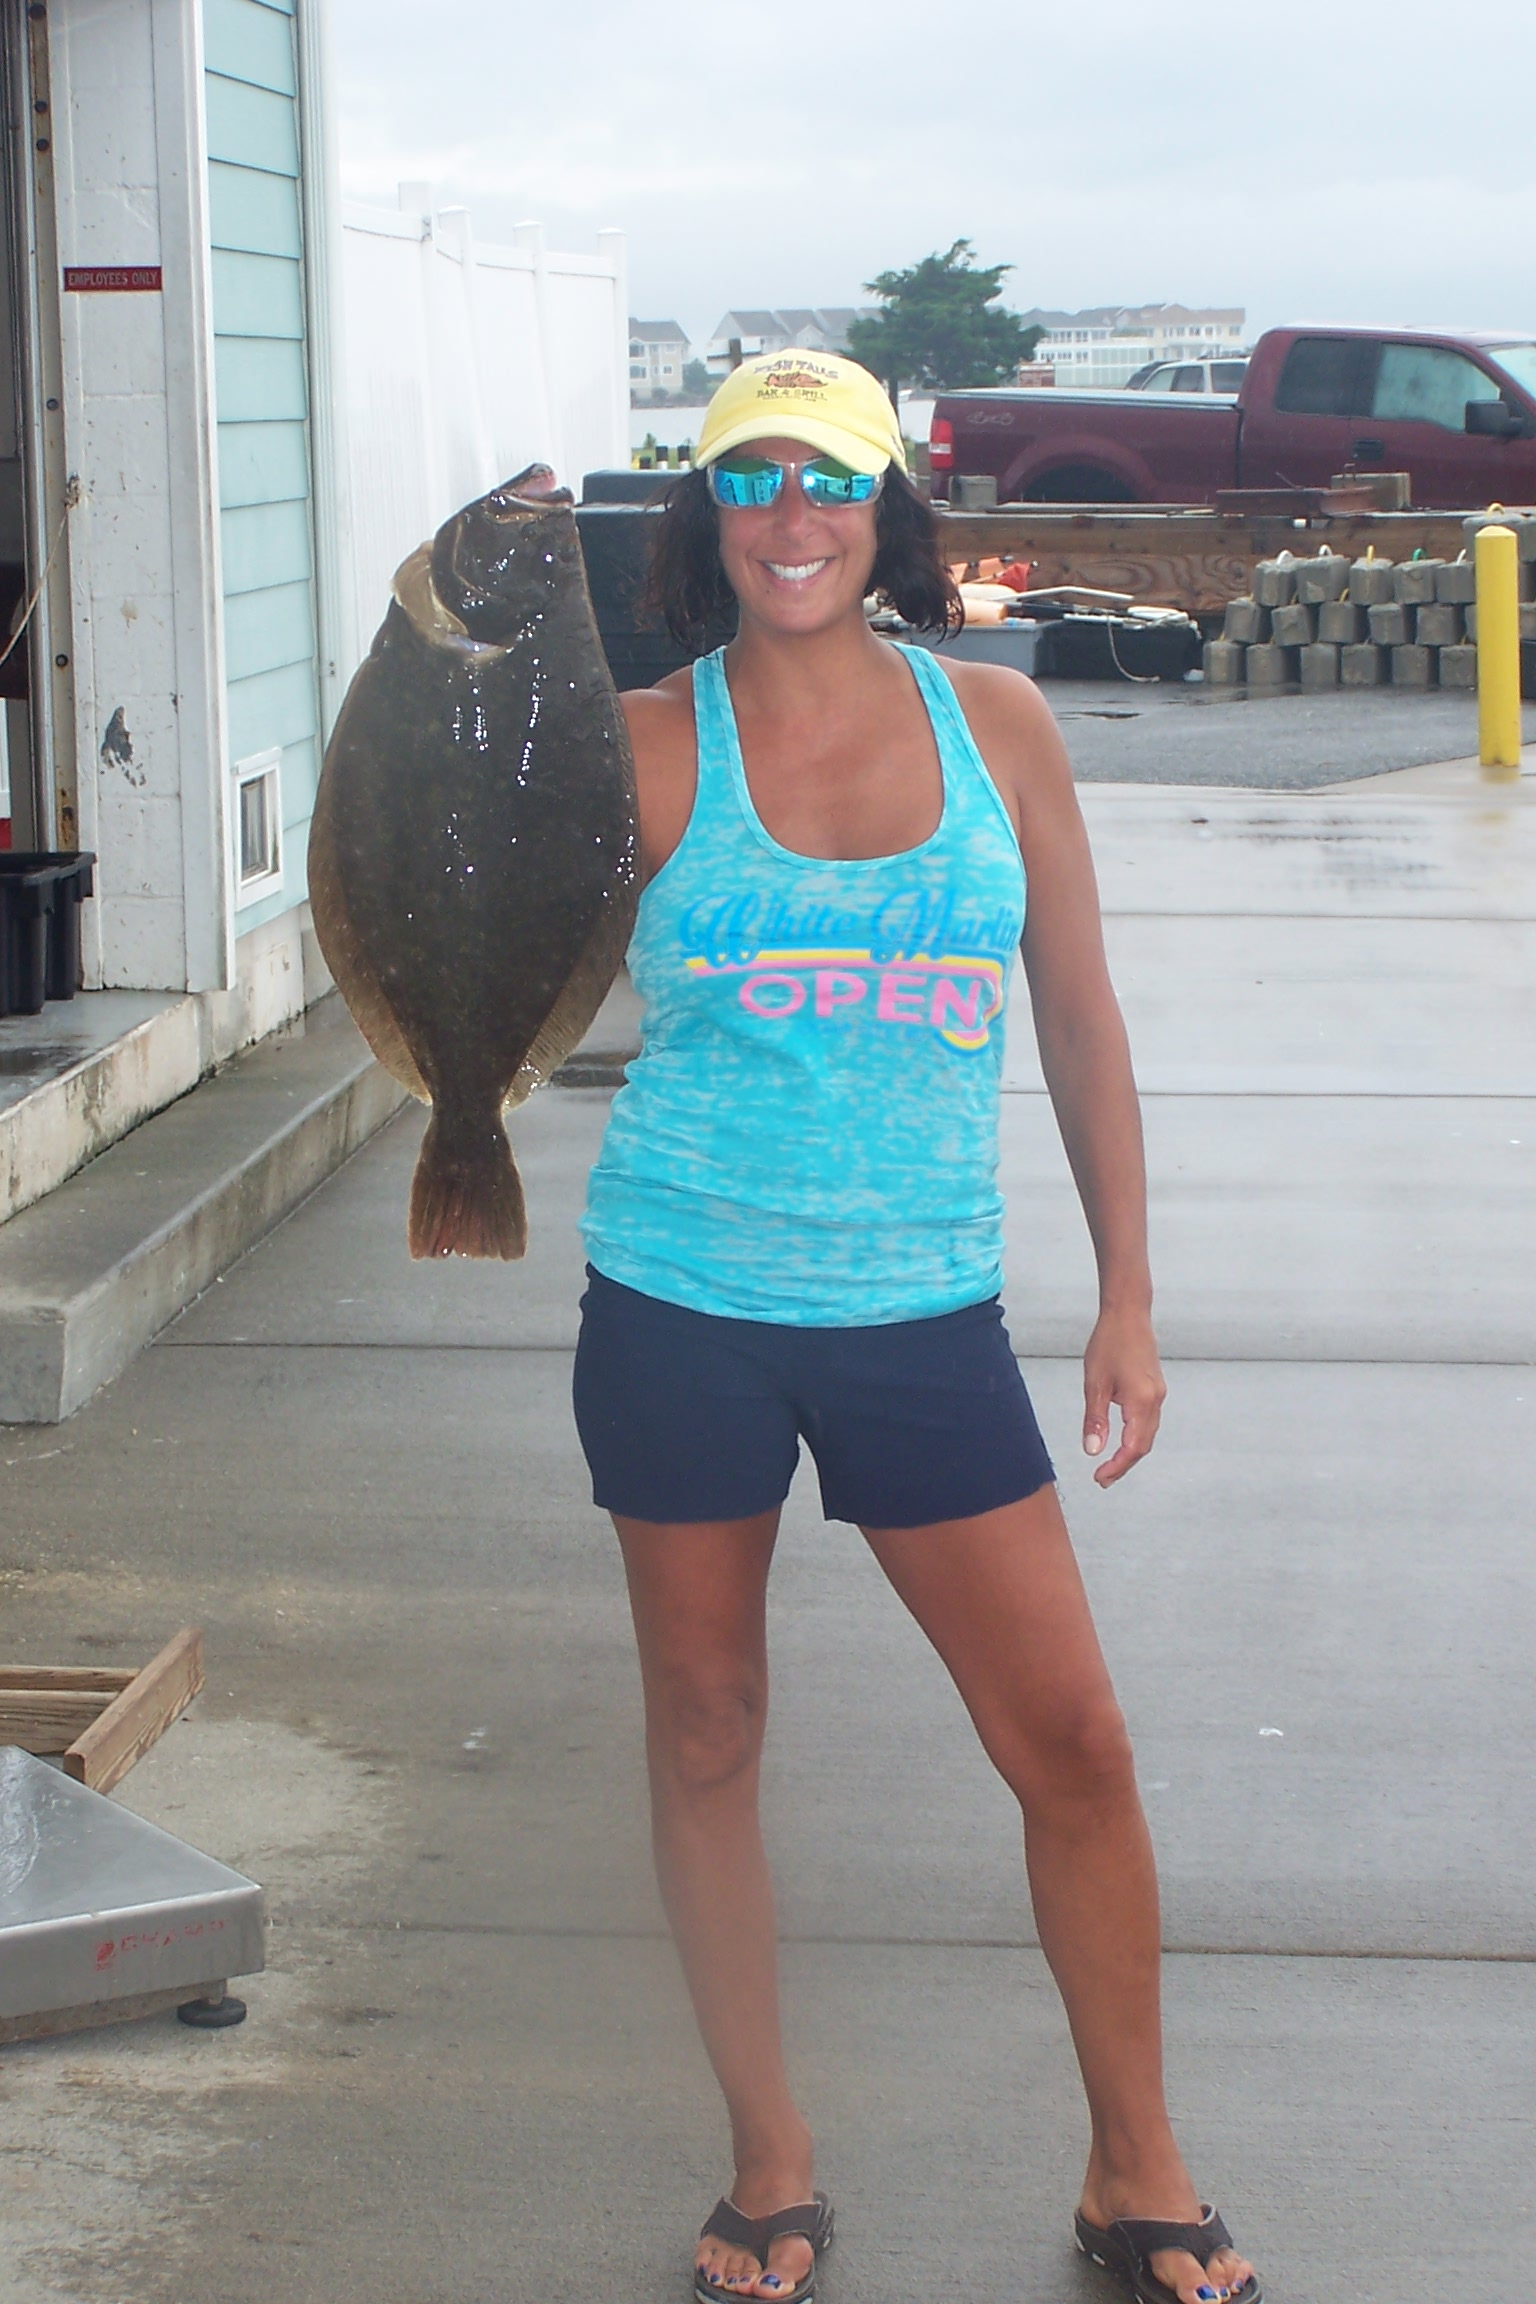 Fishing Report for 8/15/2014 - Indian River Marina - State of Delaware